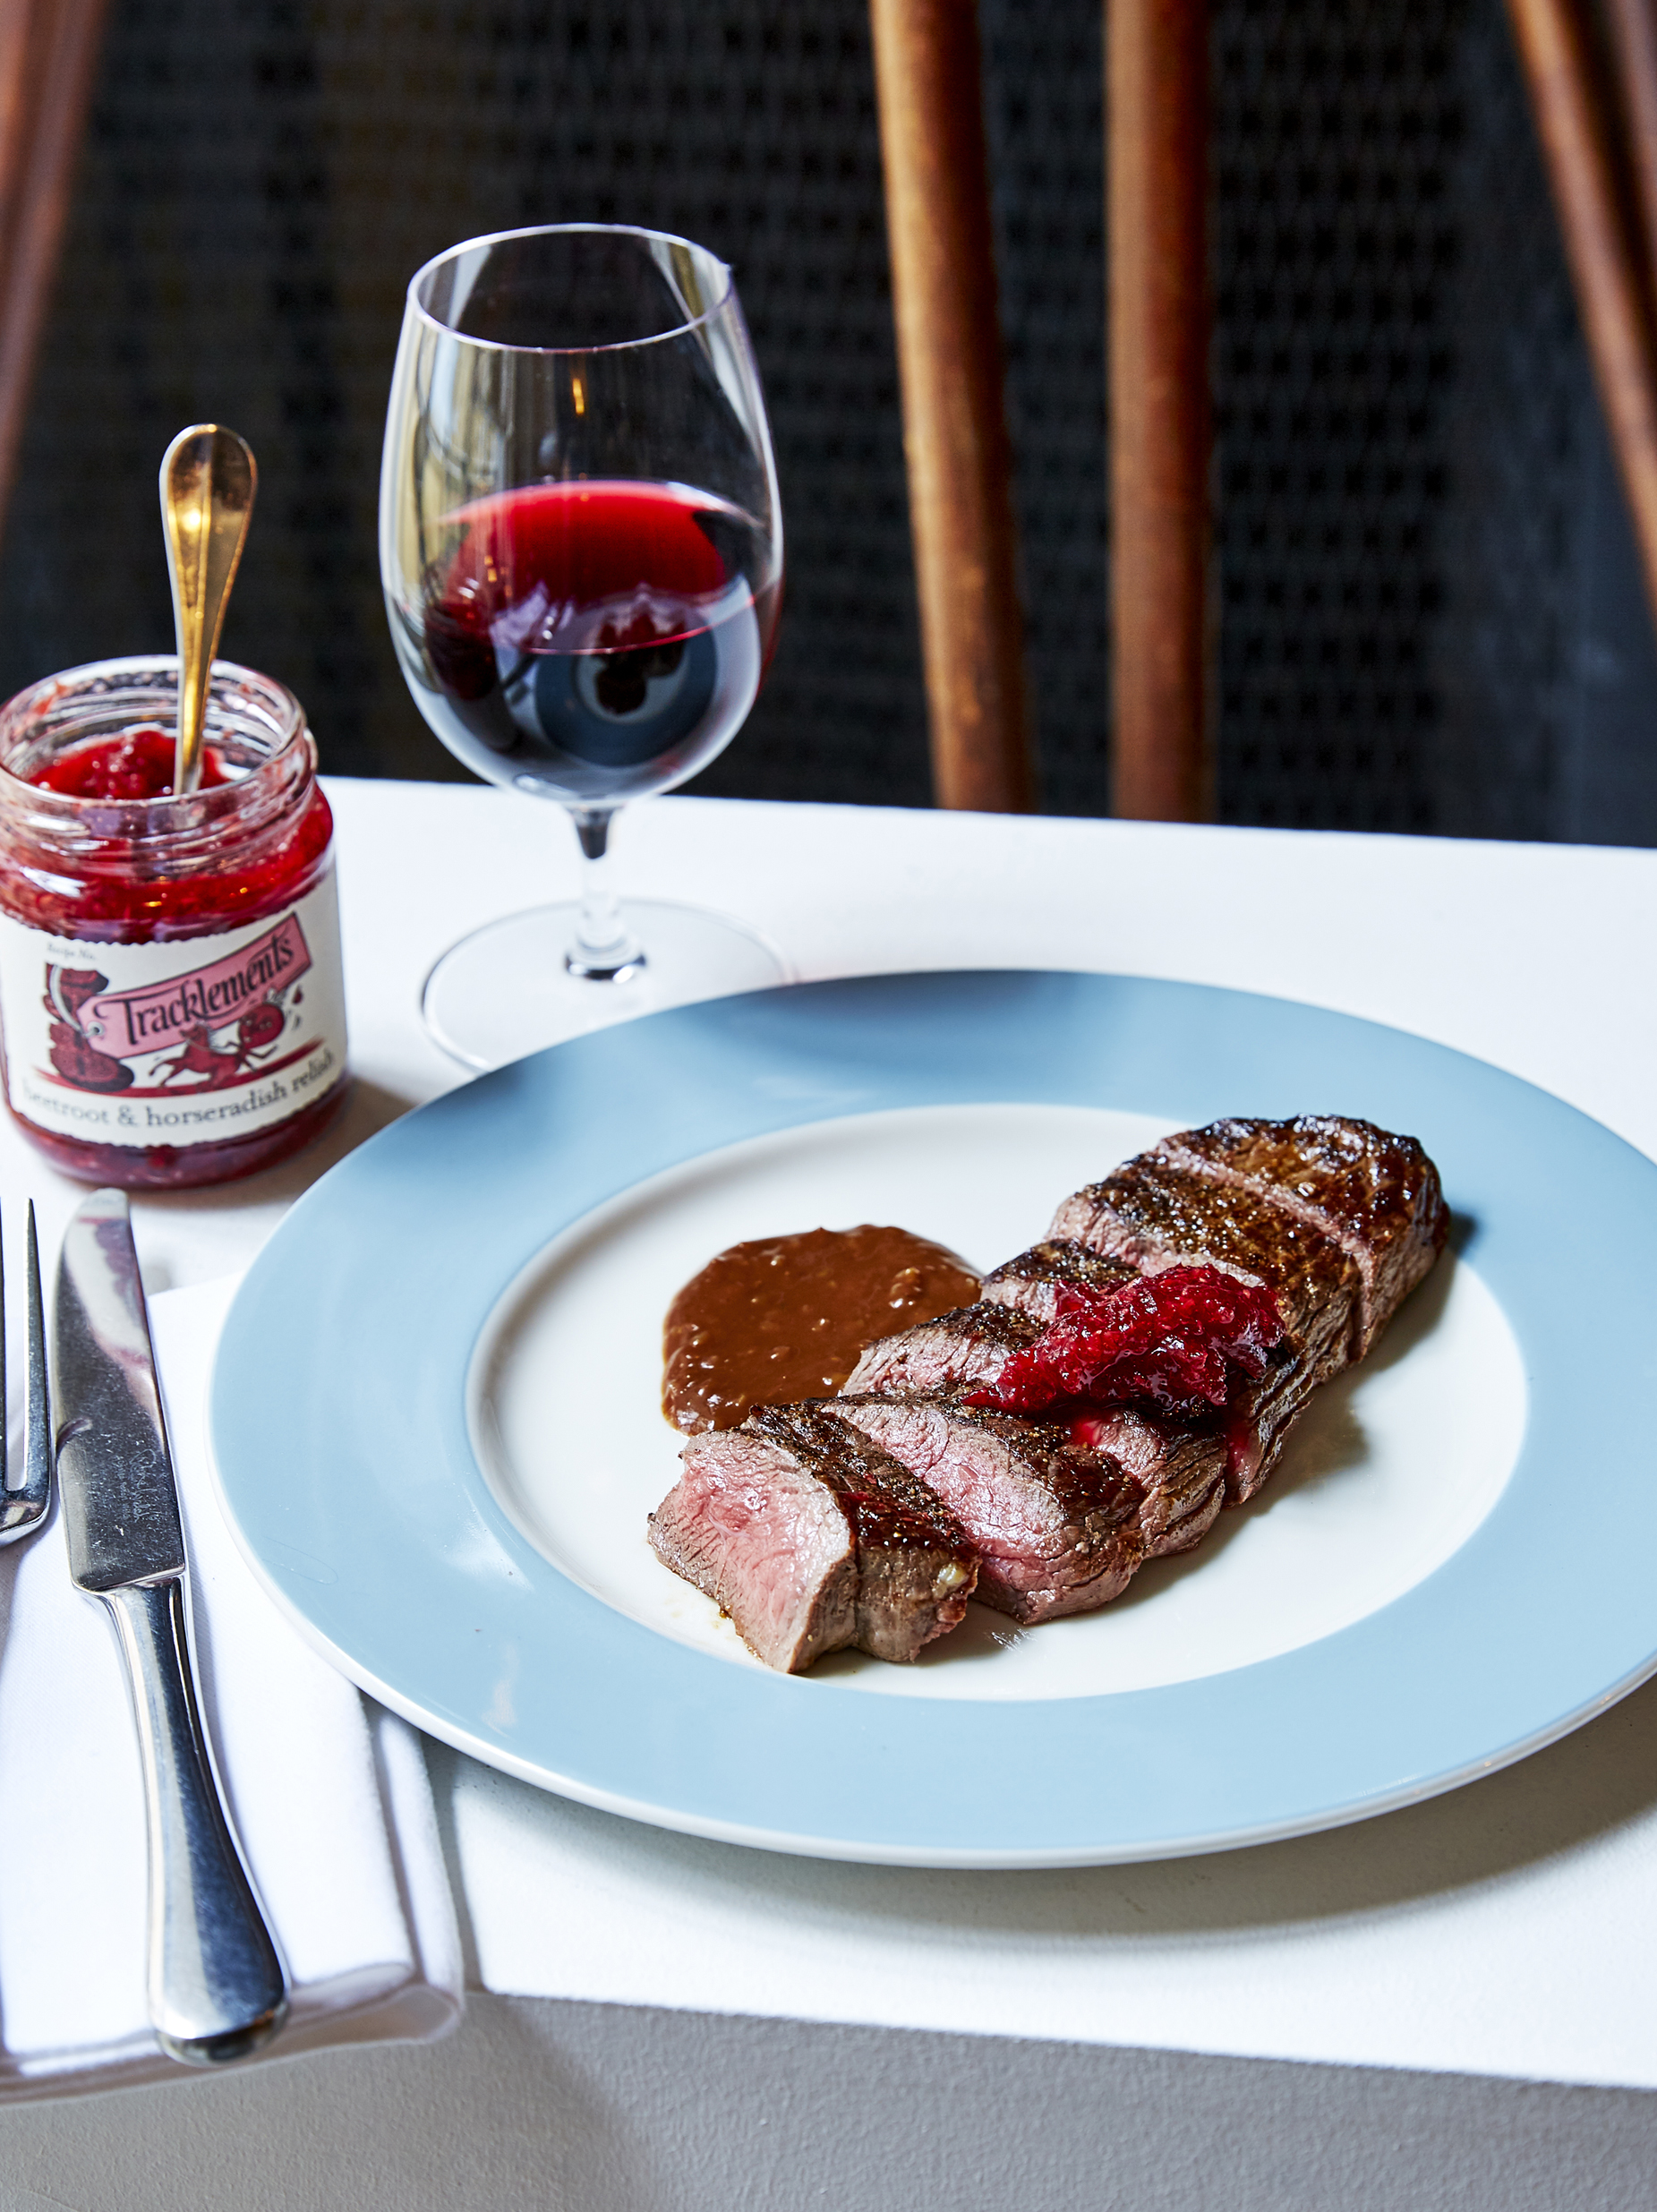 Fillet of Red Deer with Bitter Chocolate Sauce